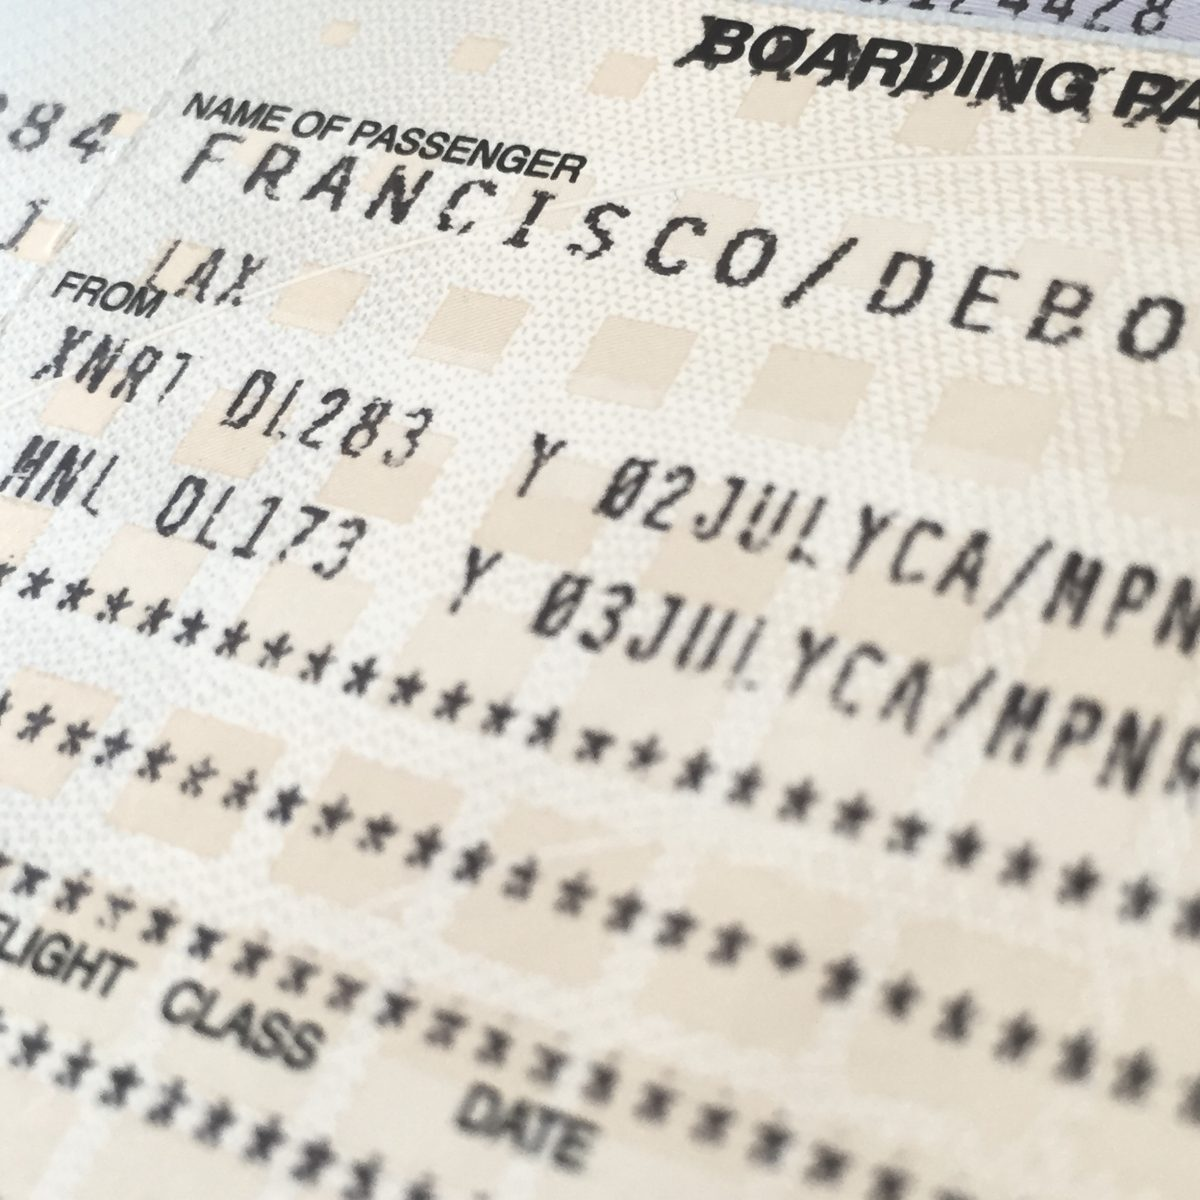 peace corp volunteer plane ticket